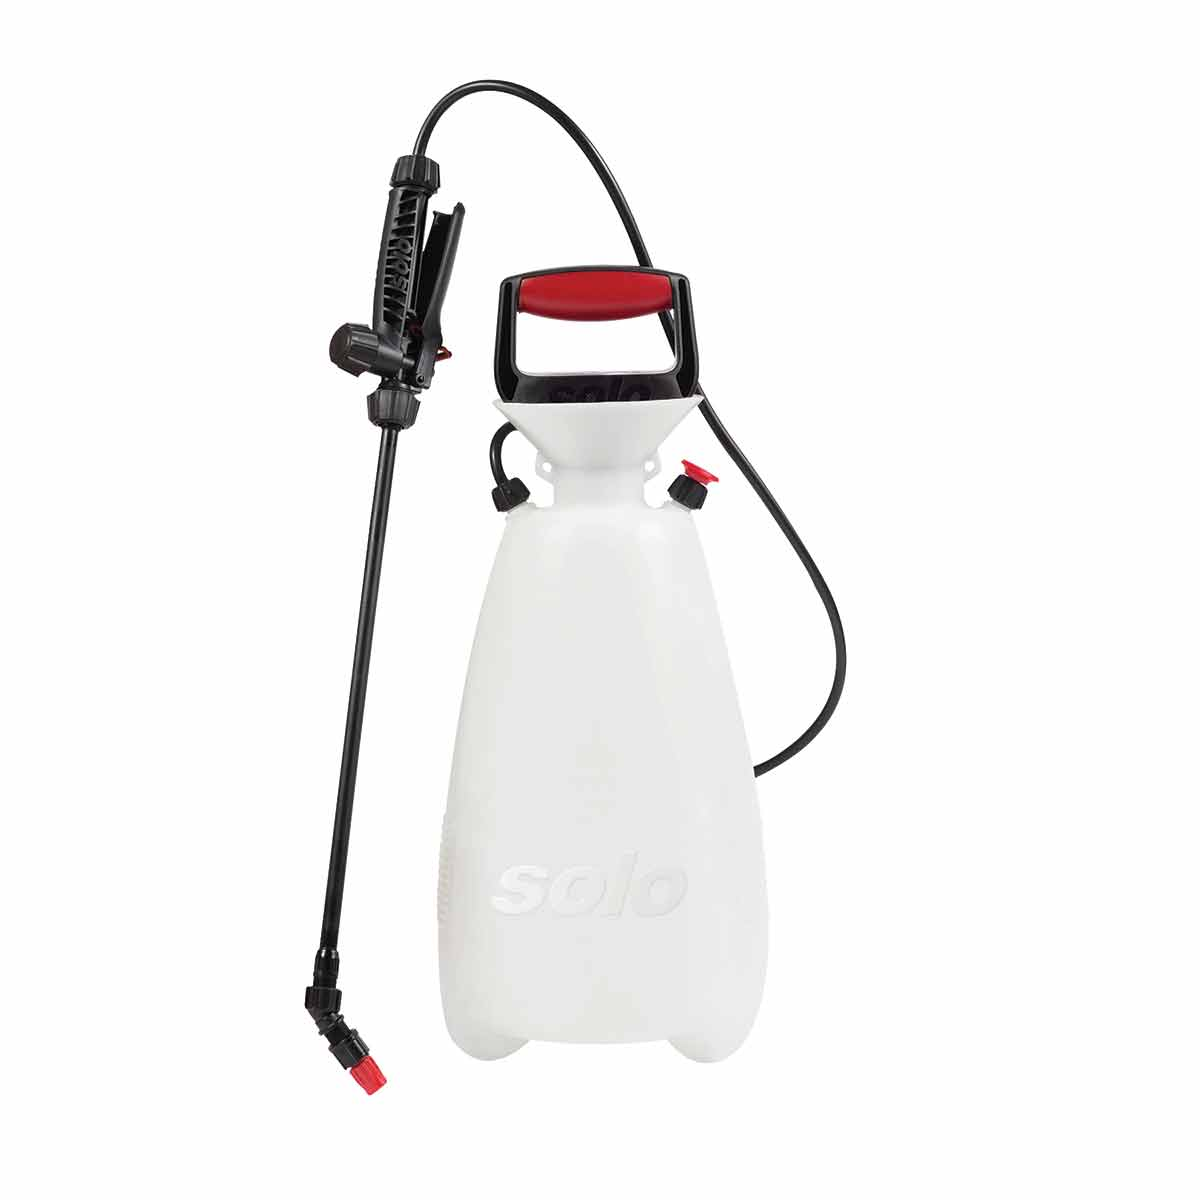 Solo 2 Gal. Home & Garden Tank Sprayer